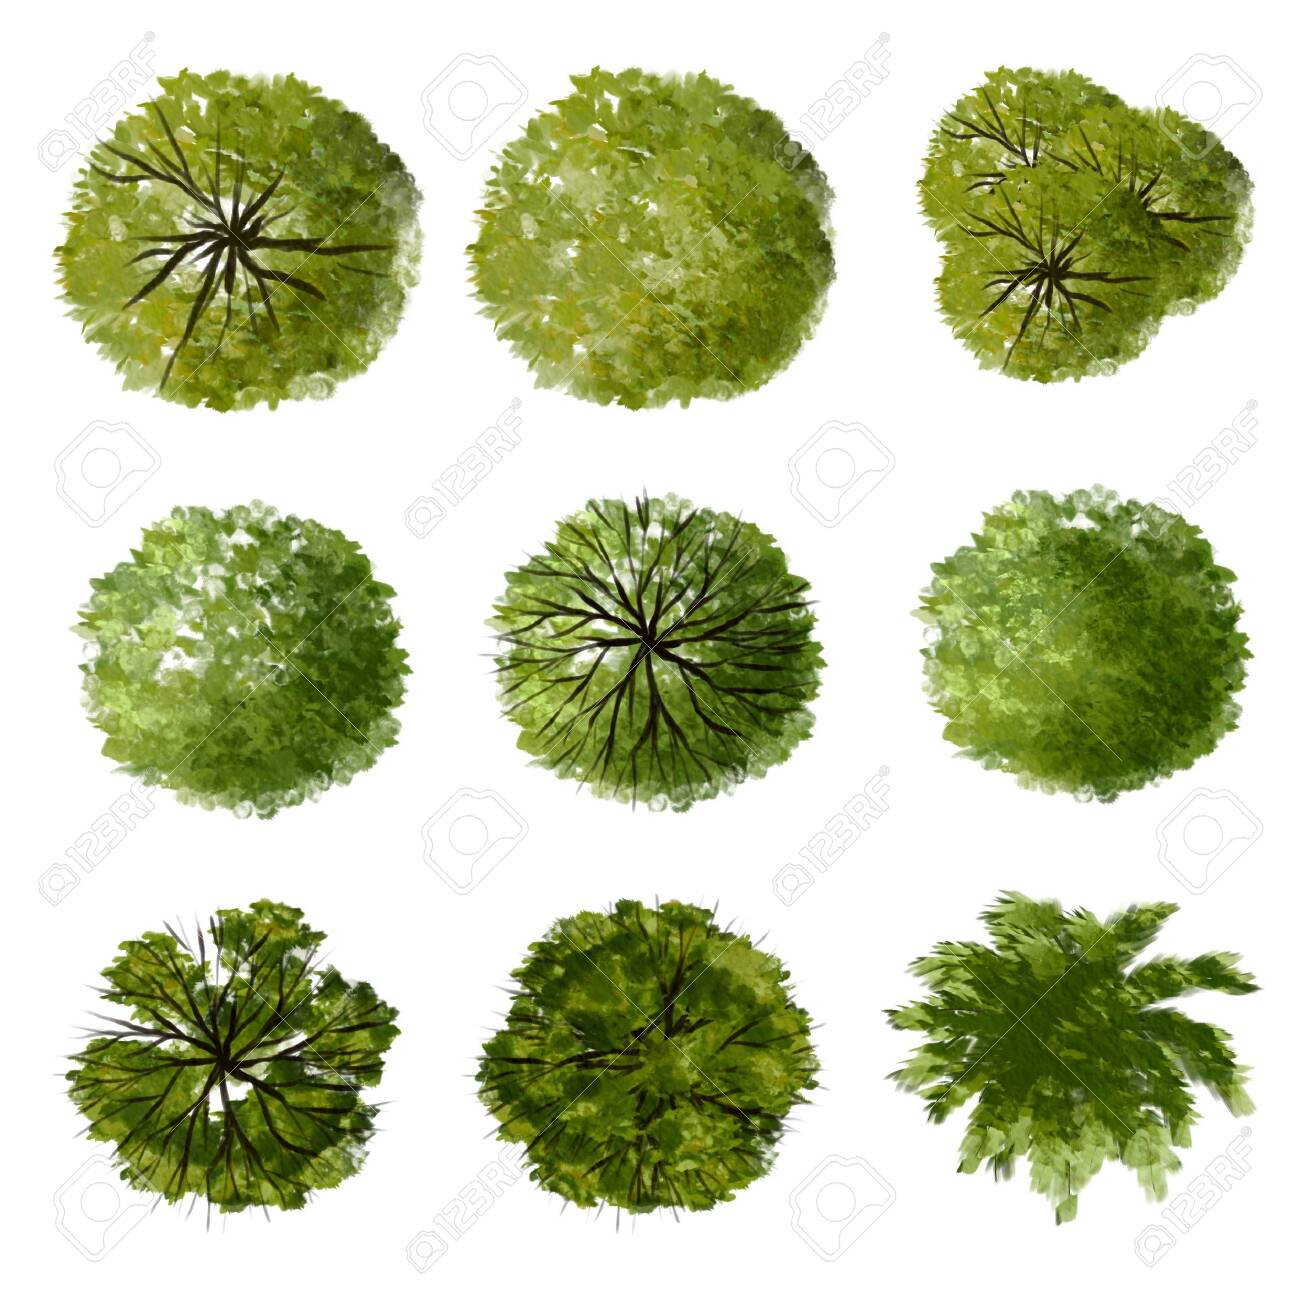 Collection of abstract watercolor green tree top view isolated on white background for landscape plan and architecture layout drawing, elements for environment and garden. - 157044997